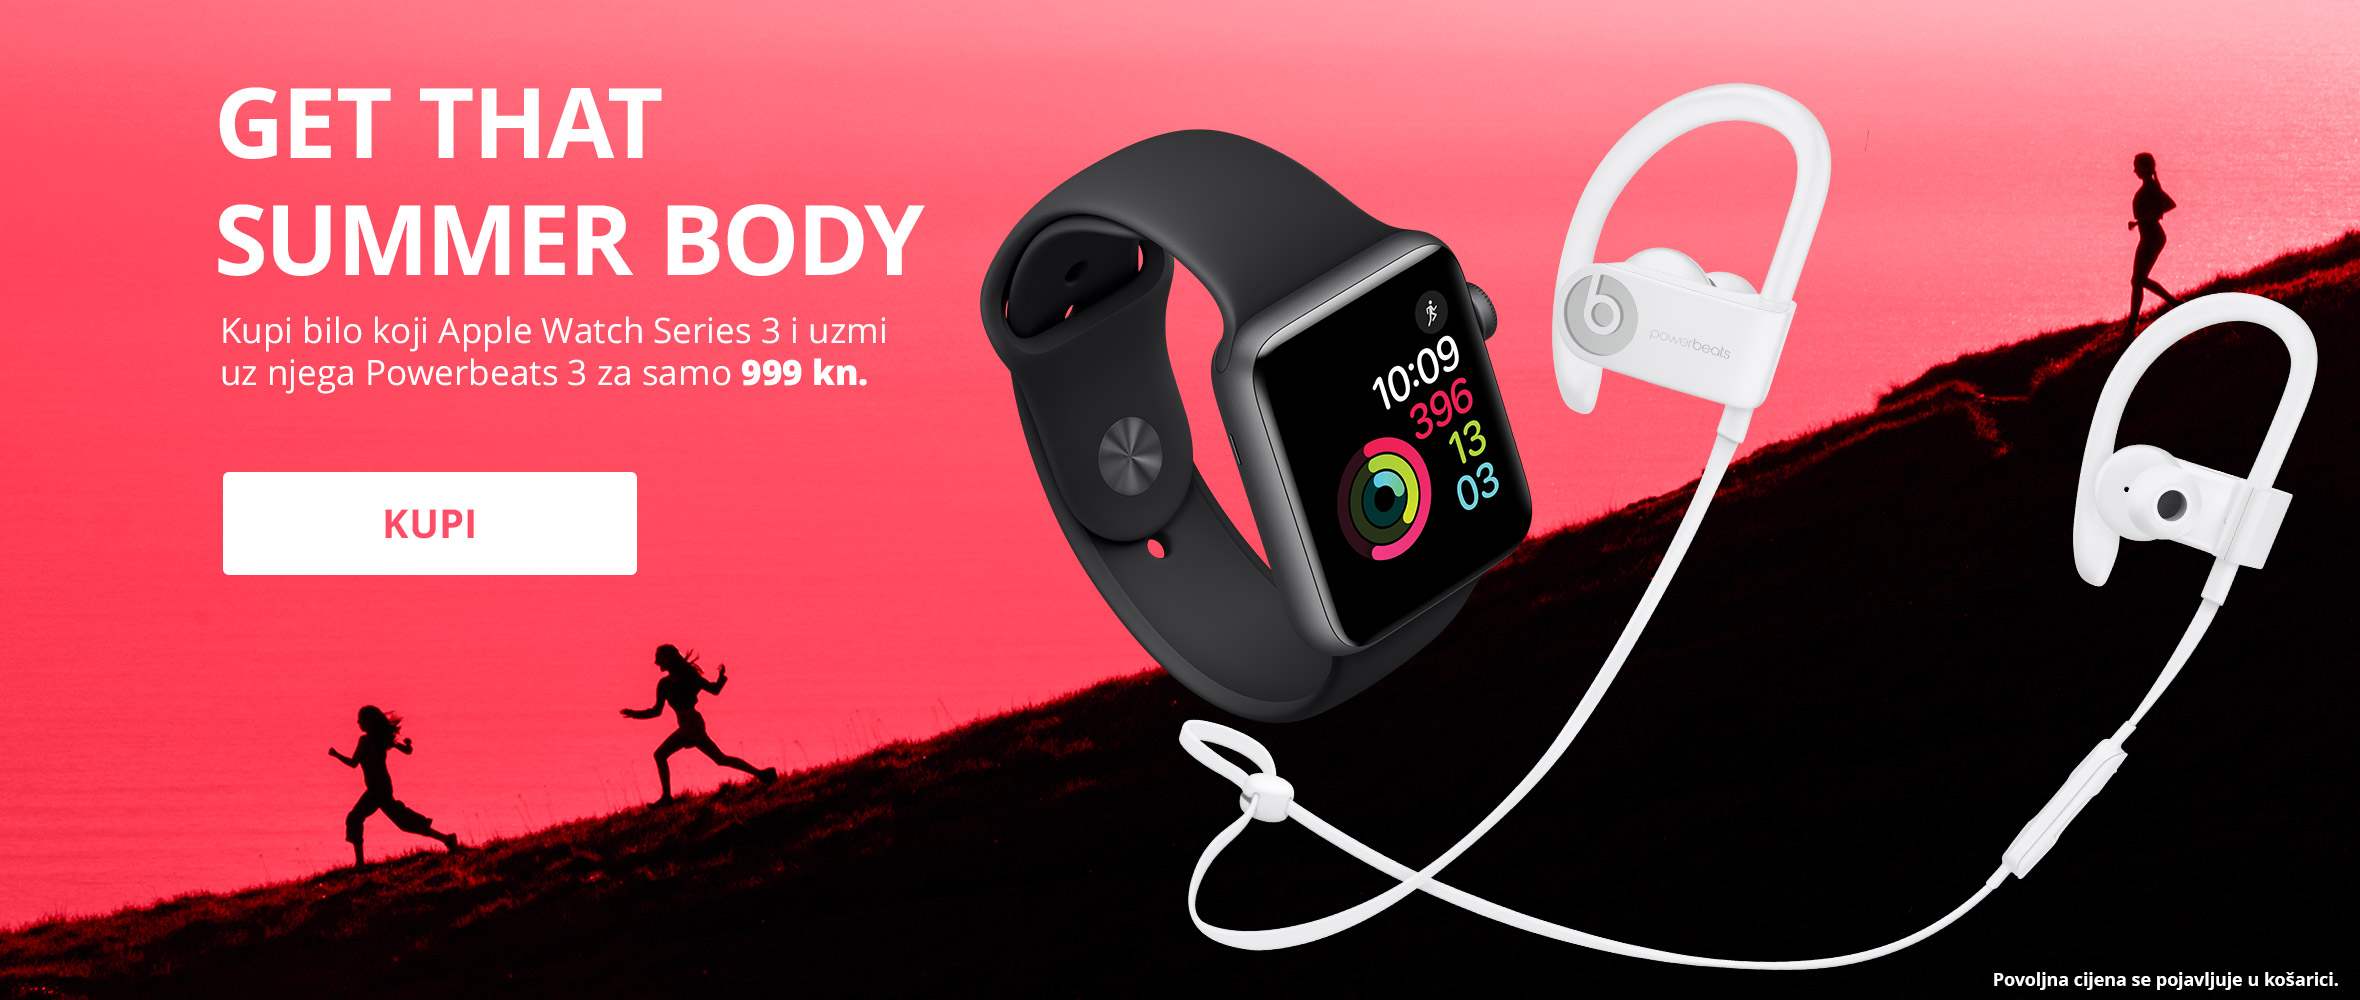 Apple Watch Series 3 Powerbeats 3